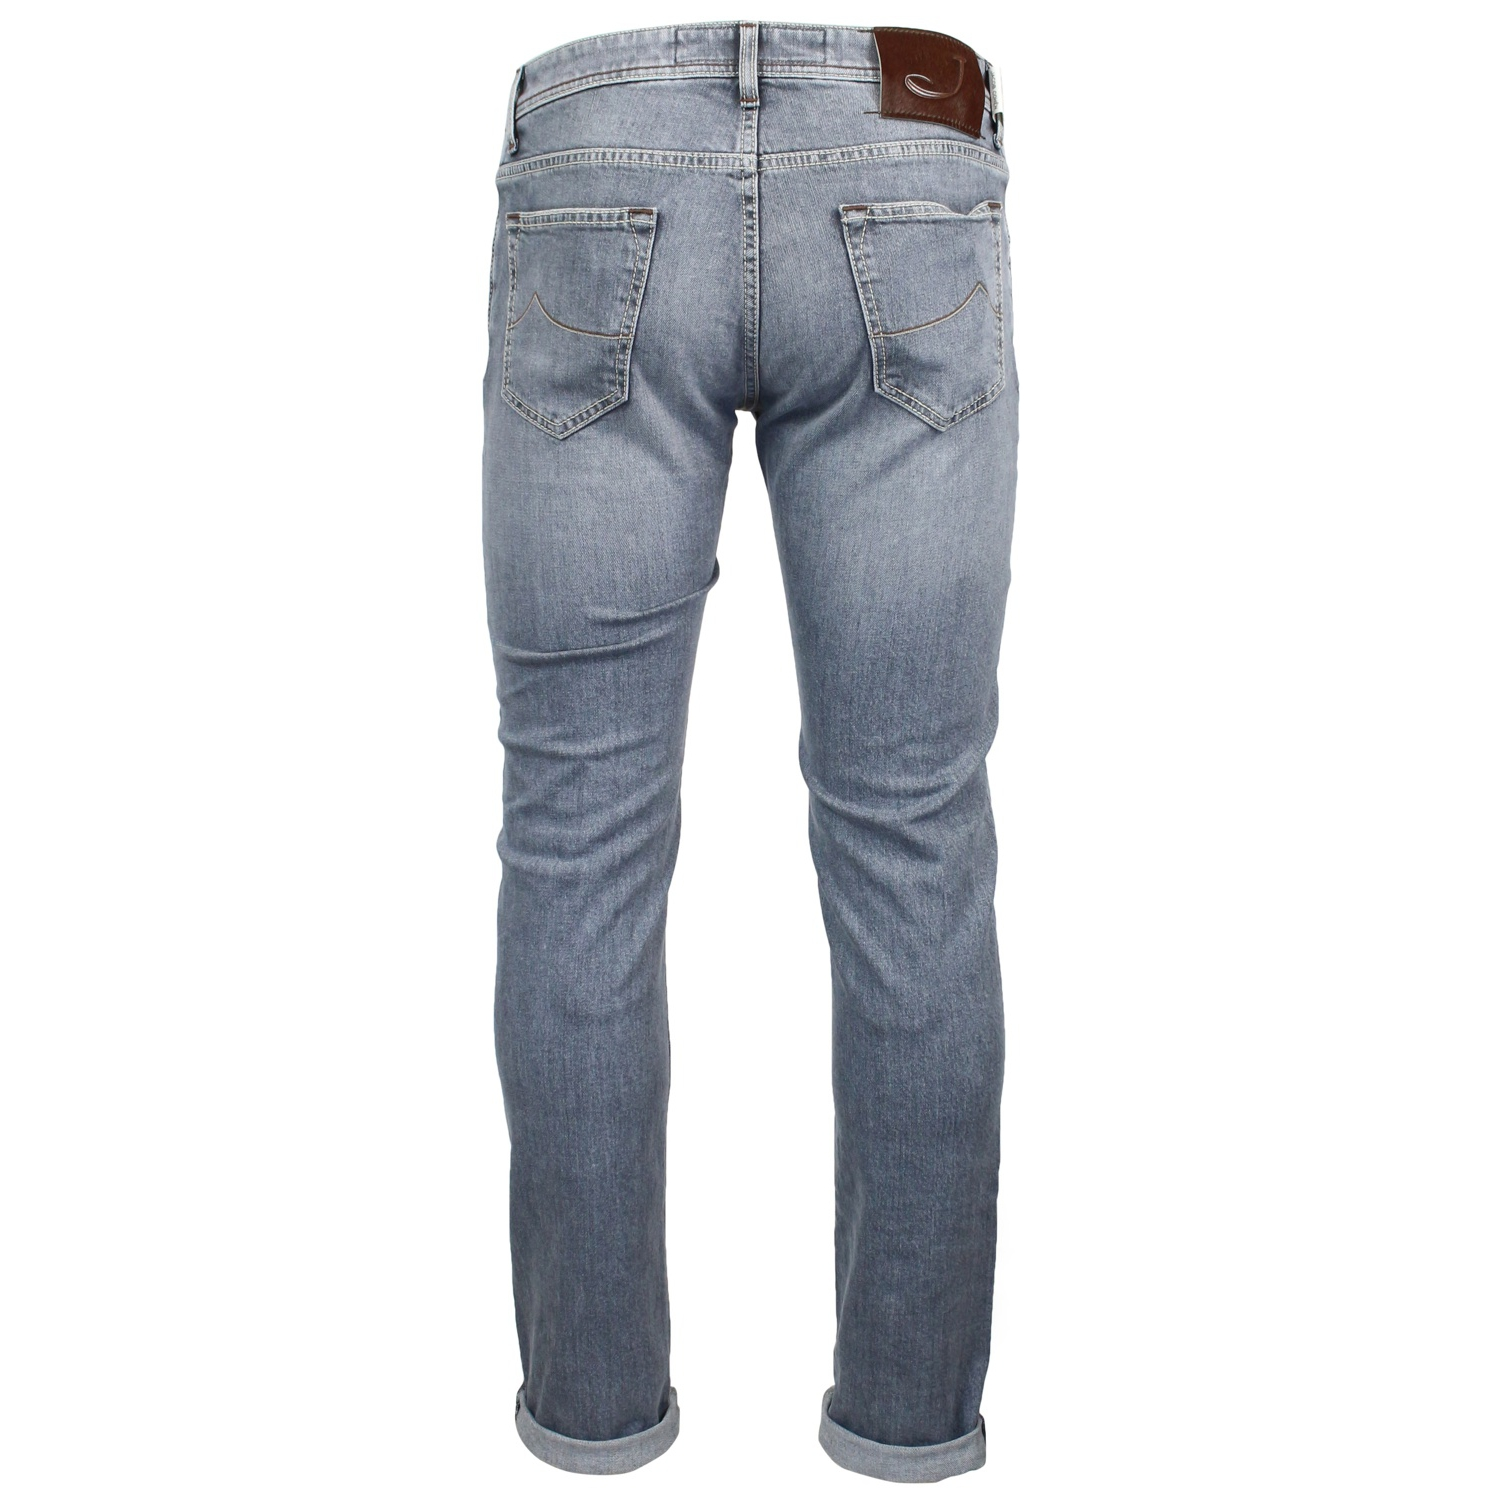 616210ab6d6959 Slim-fit jeans with a used effect Light grey, Jacob Cohen pw622 slim ...